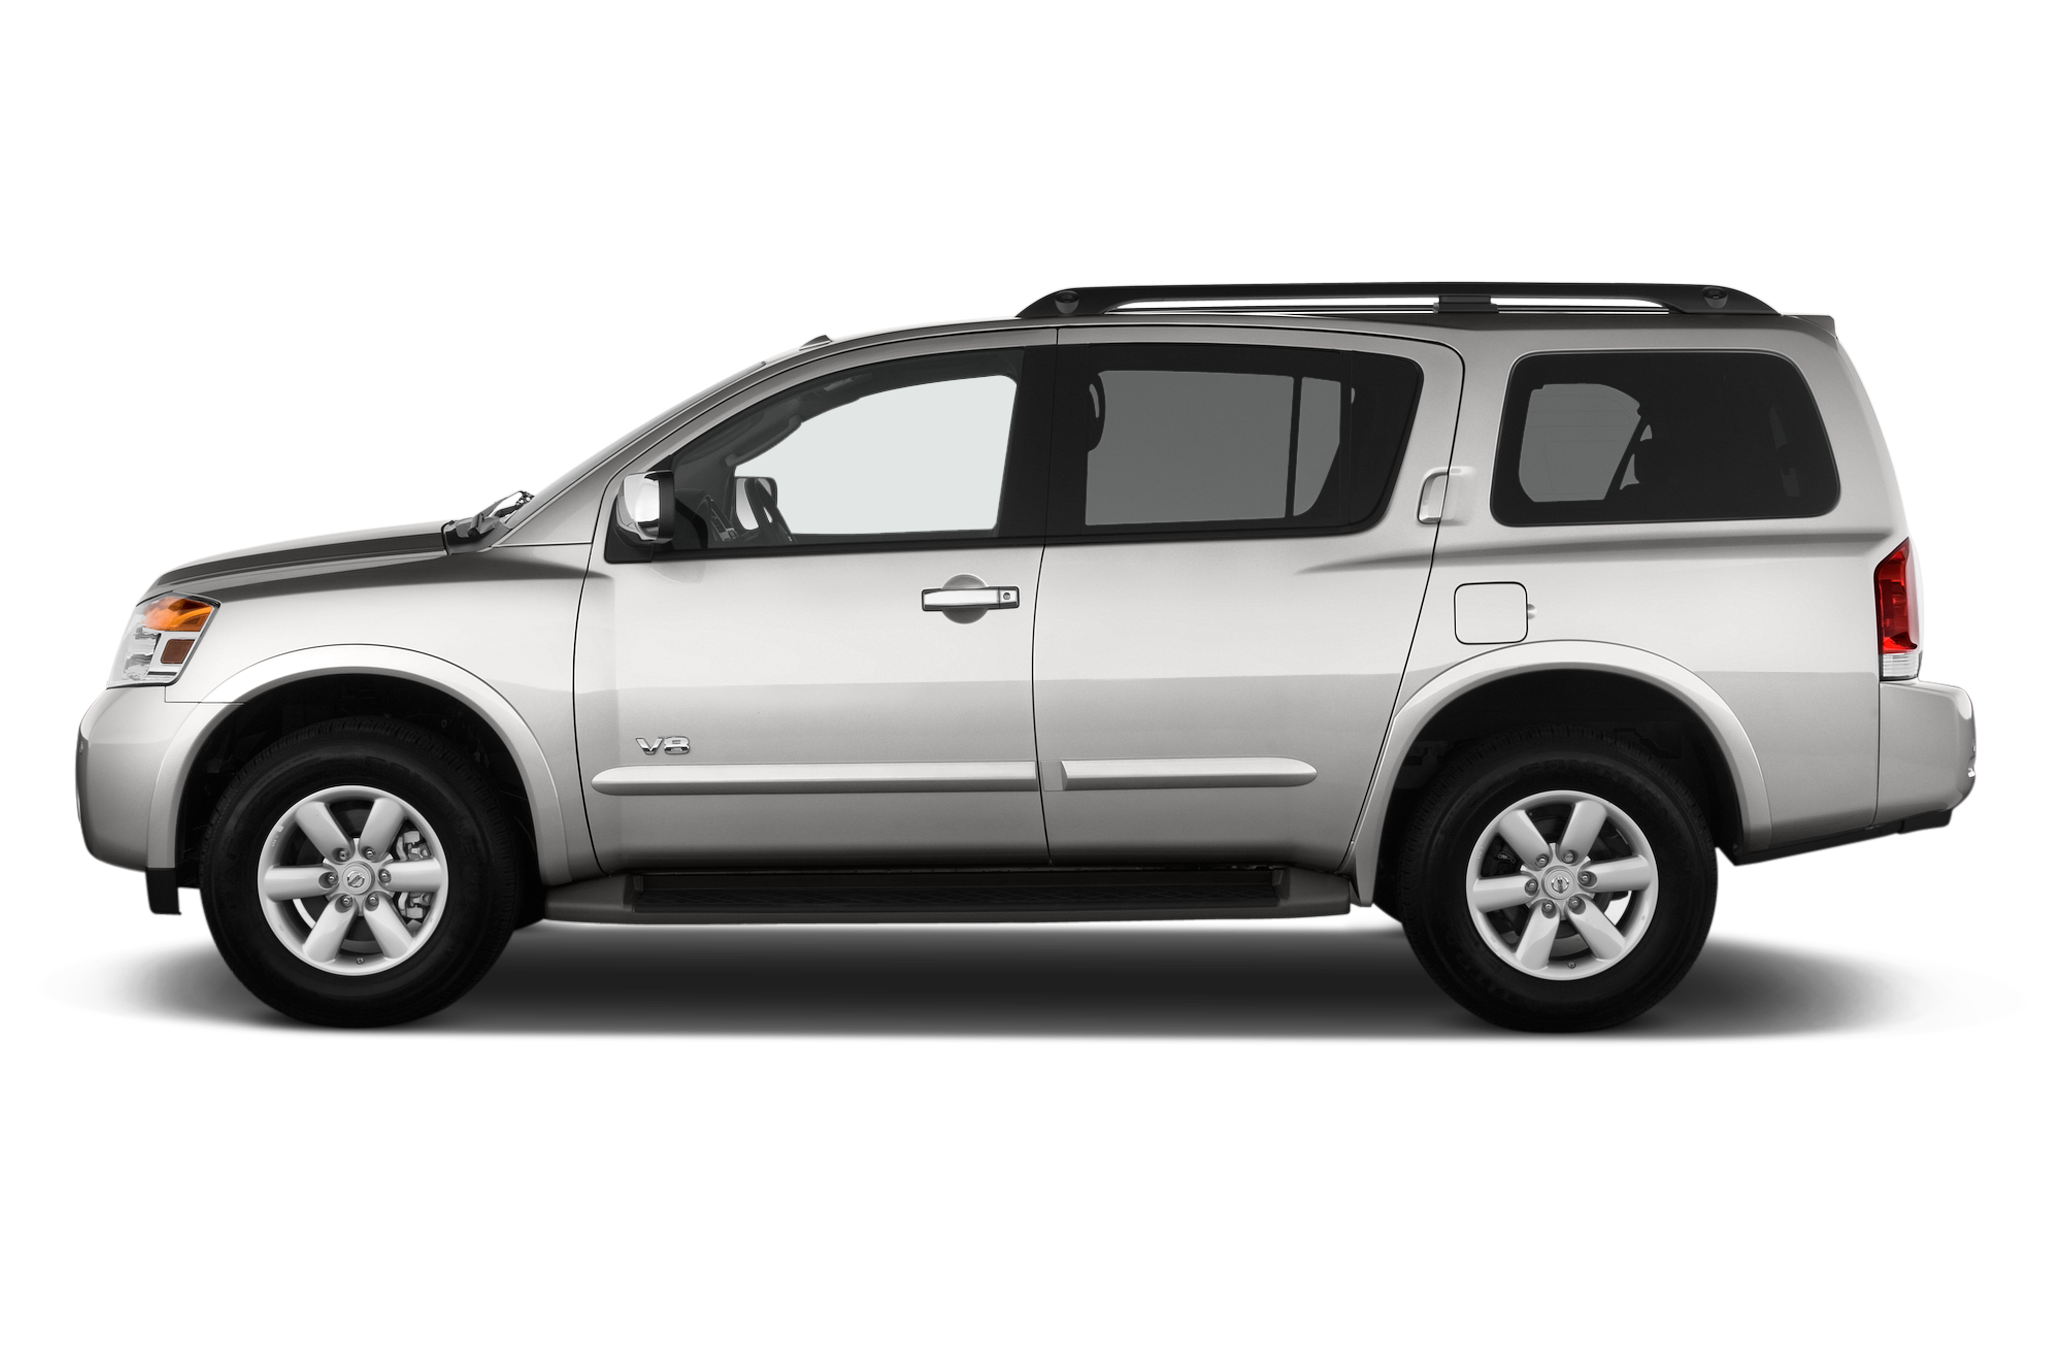 2015 nissan armada base price rises slightly to 39 055. Black Bedroom Furniture Sets. Home Design Ideas